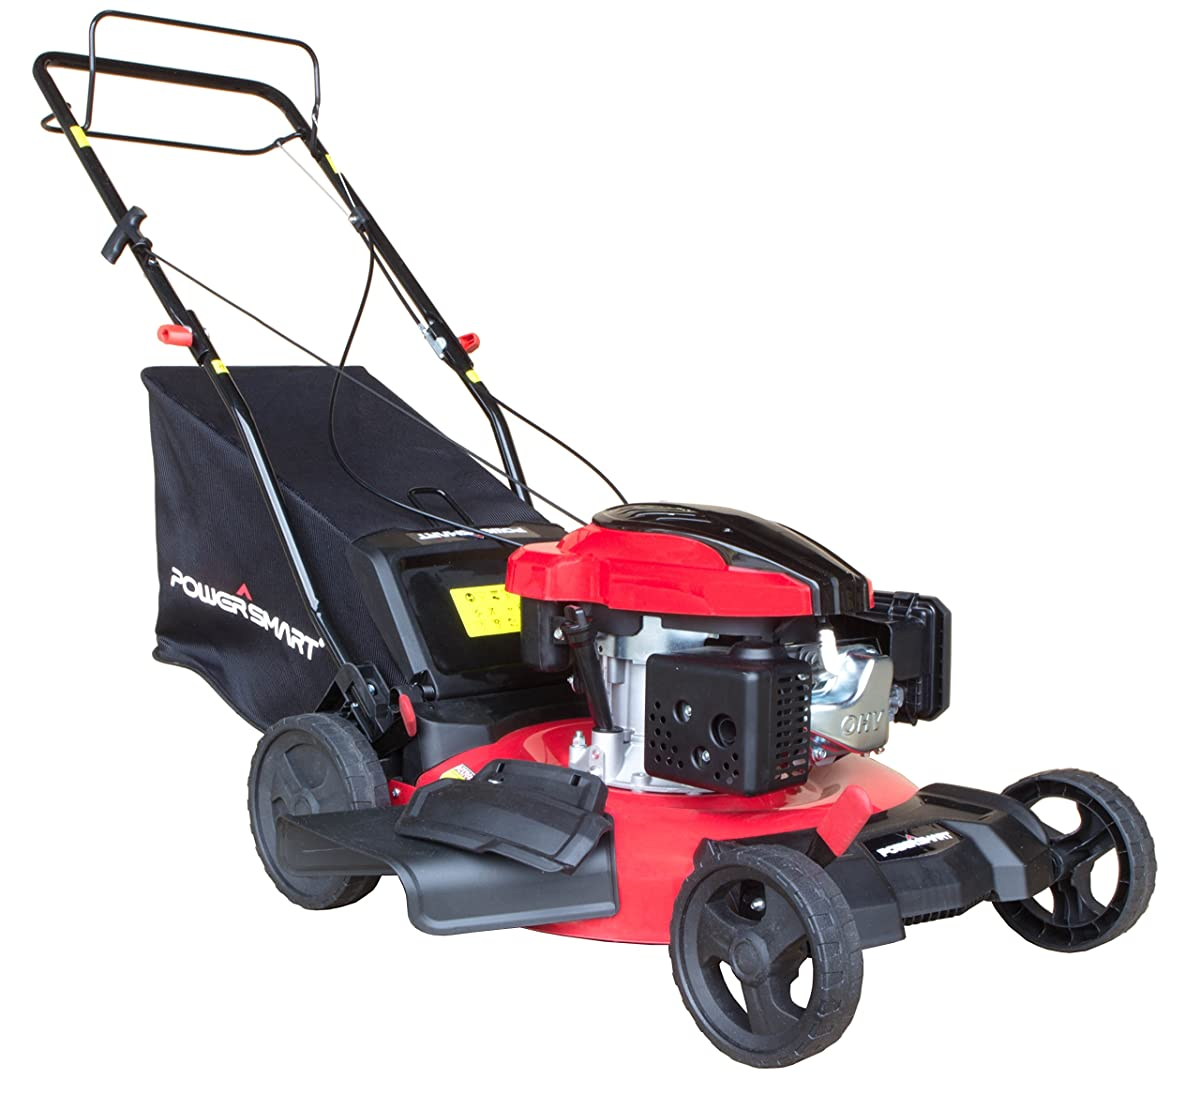 PowerSmart DB8621S Gas Self Propelled Mower